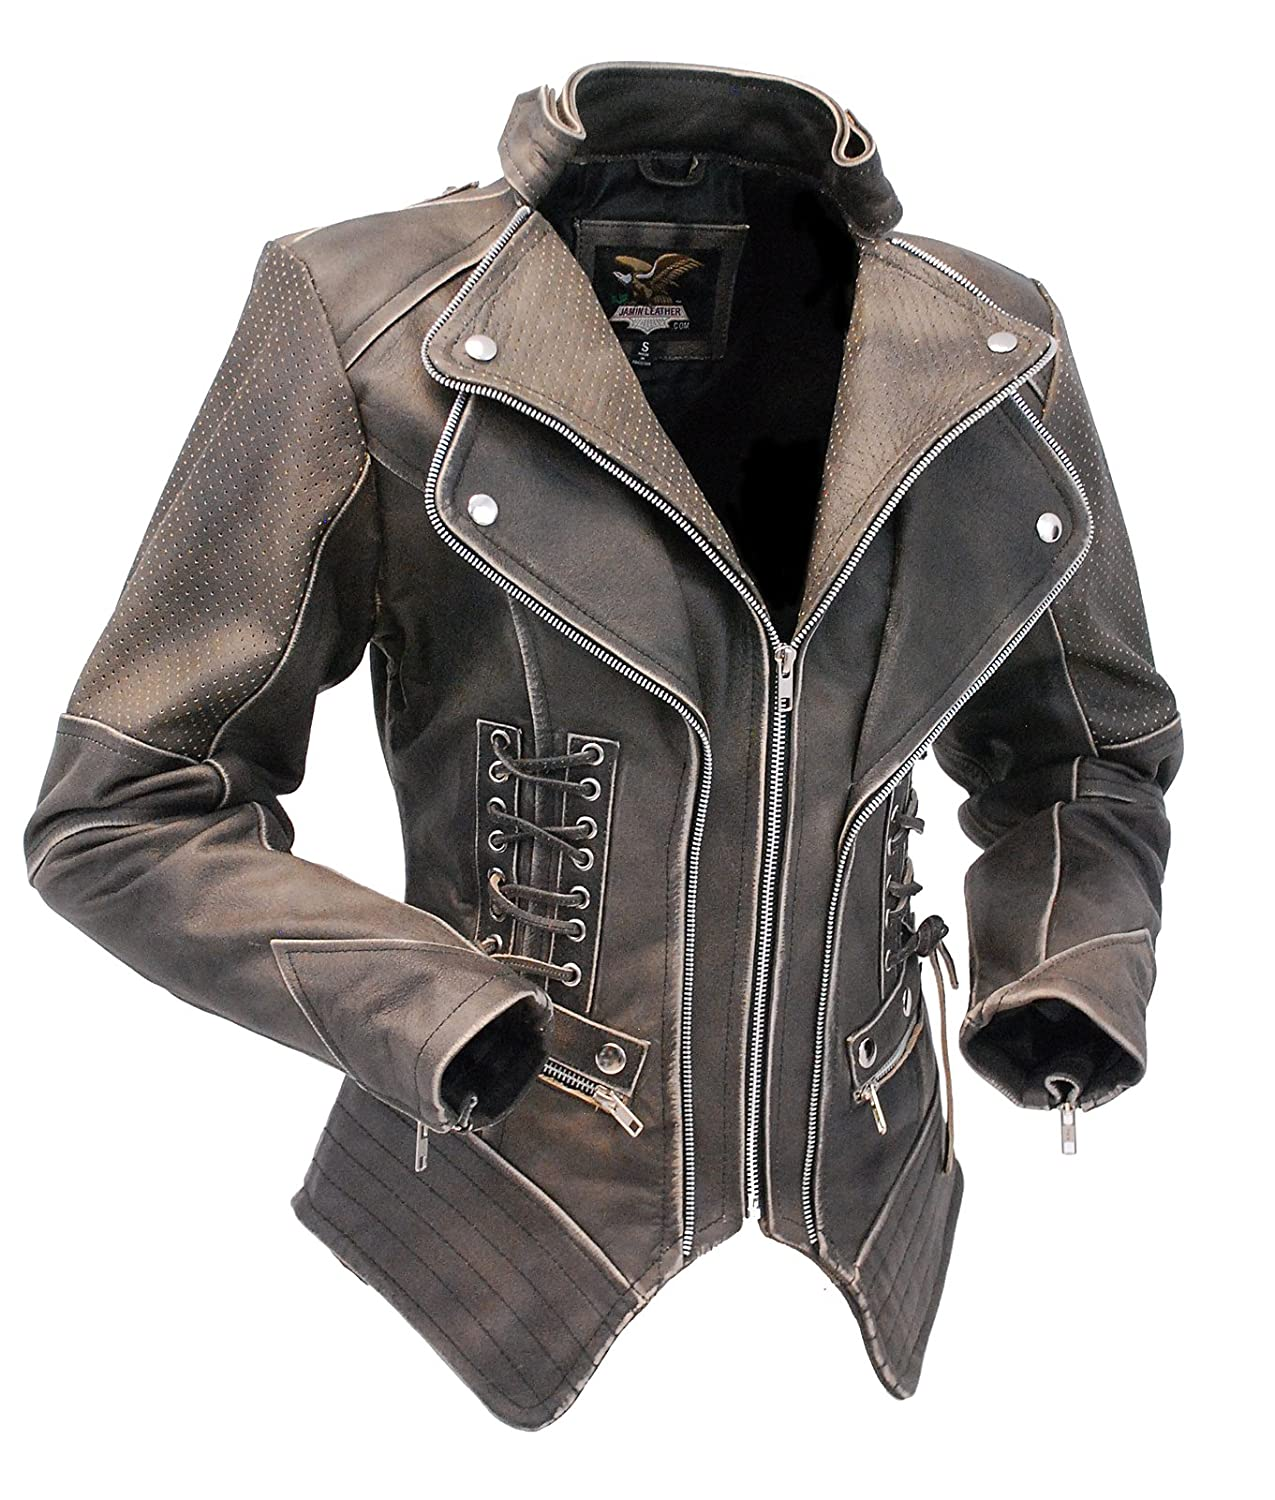 e7aa50e3 Jamin' Leather Women's Brown Vintage Steampunk Leather Jacket CCW  #LA15070XZZN